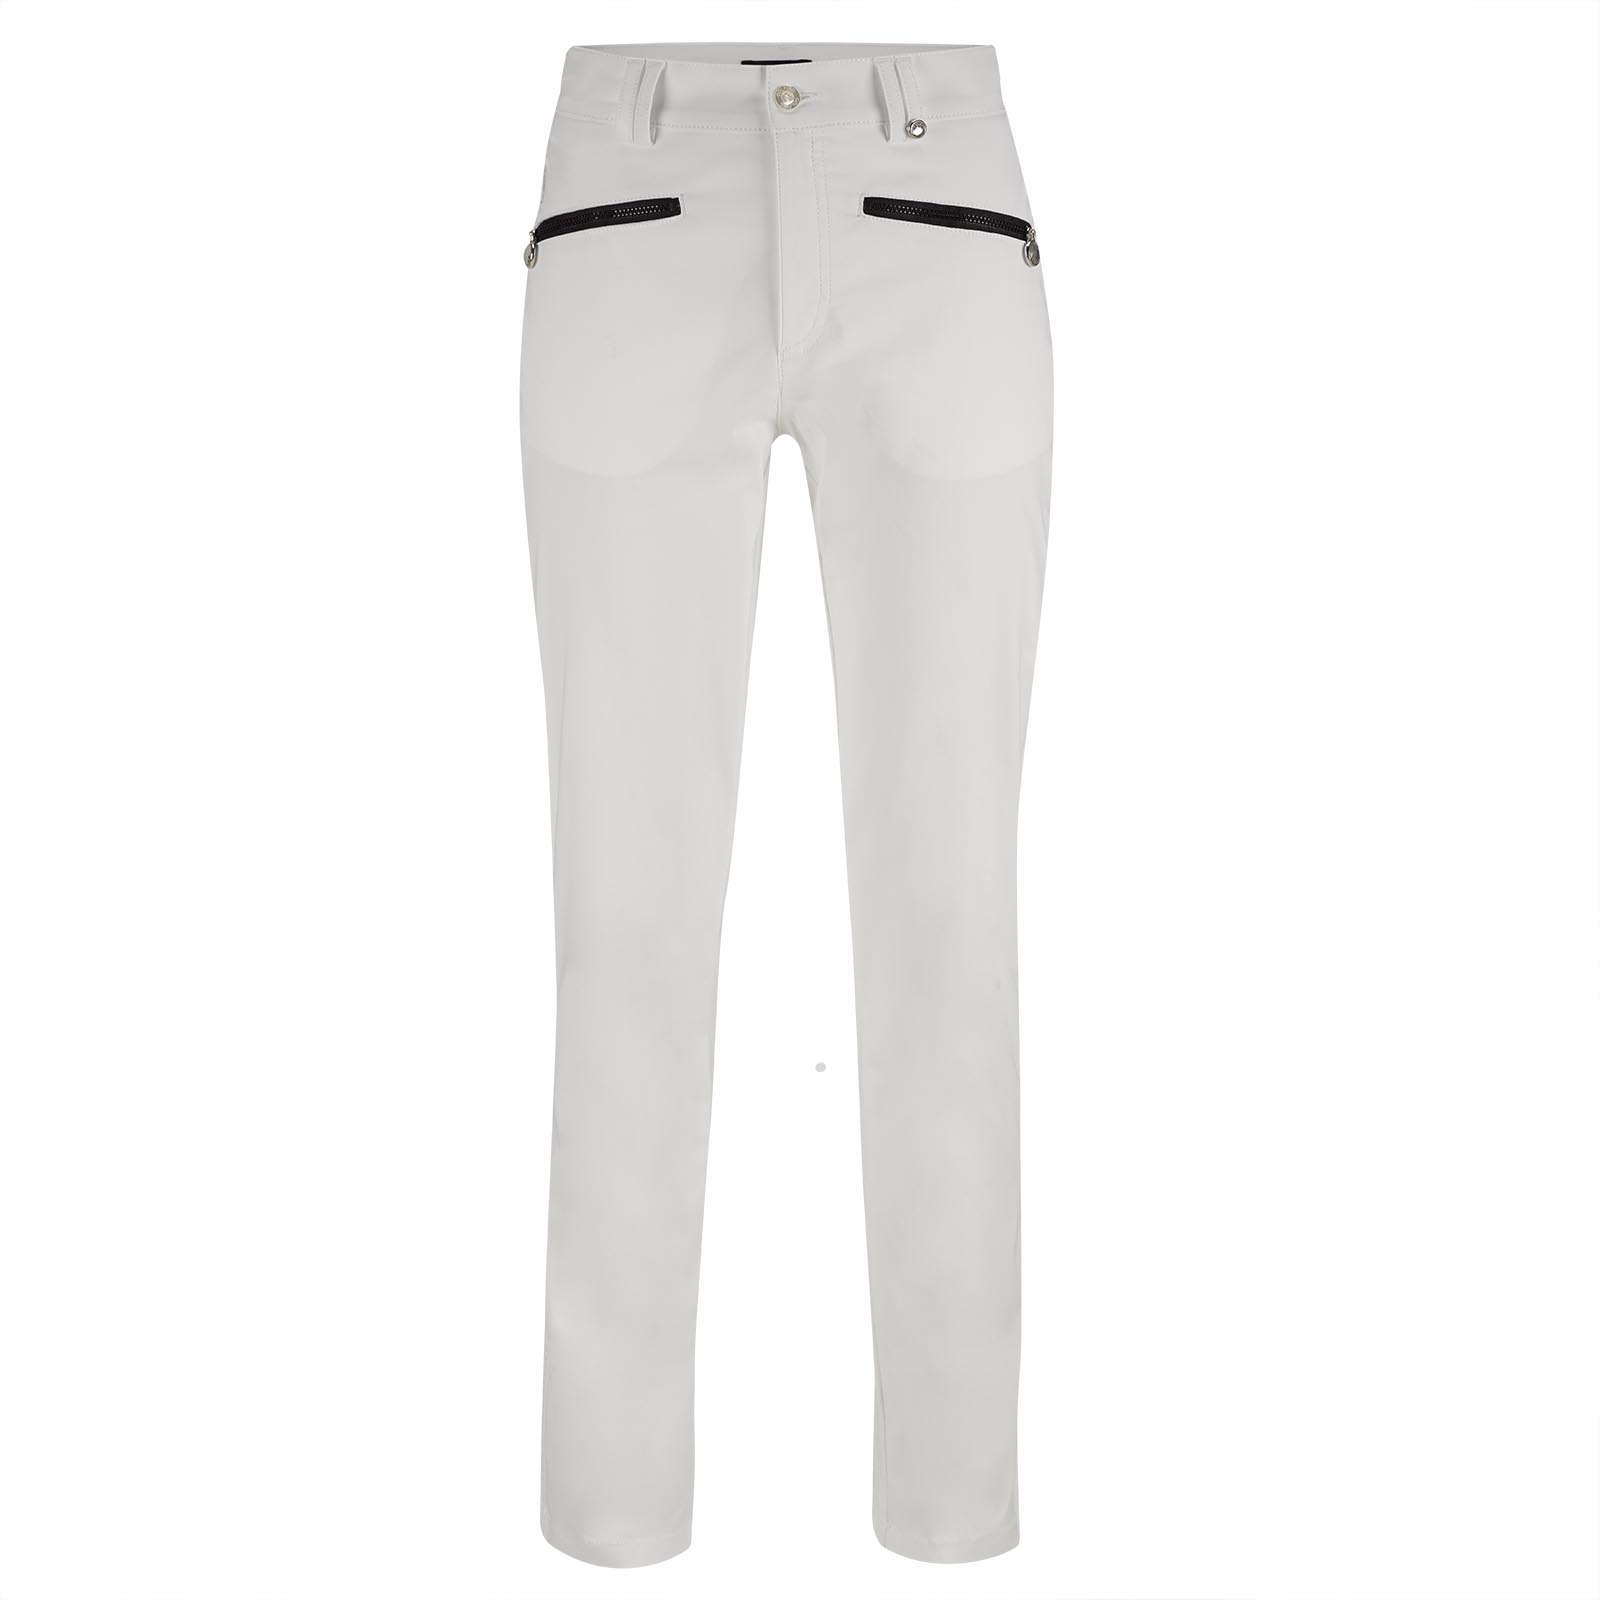 Ladies' 7/8 pants made from stretch material with sun protection function